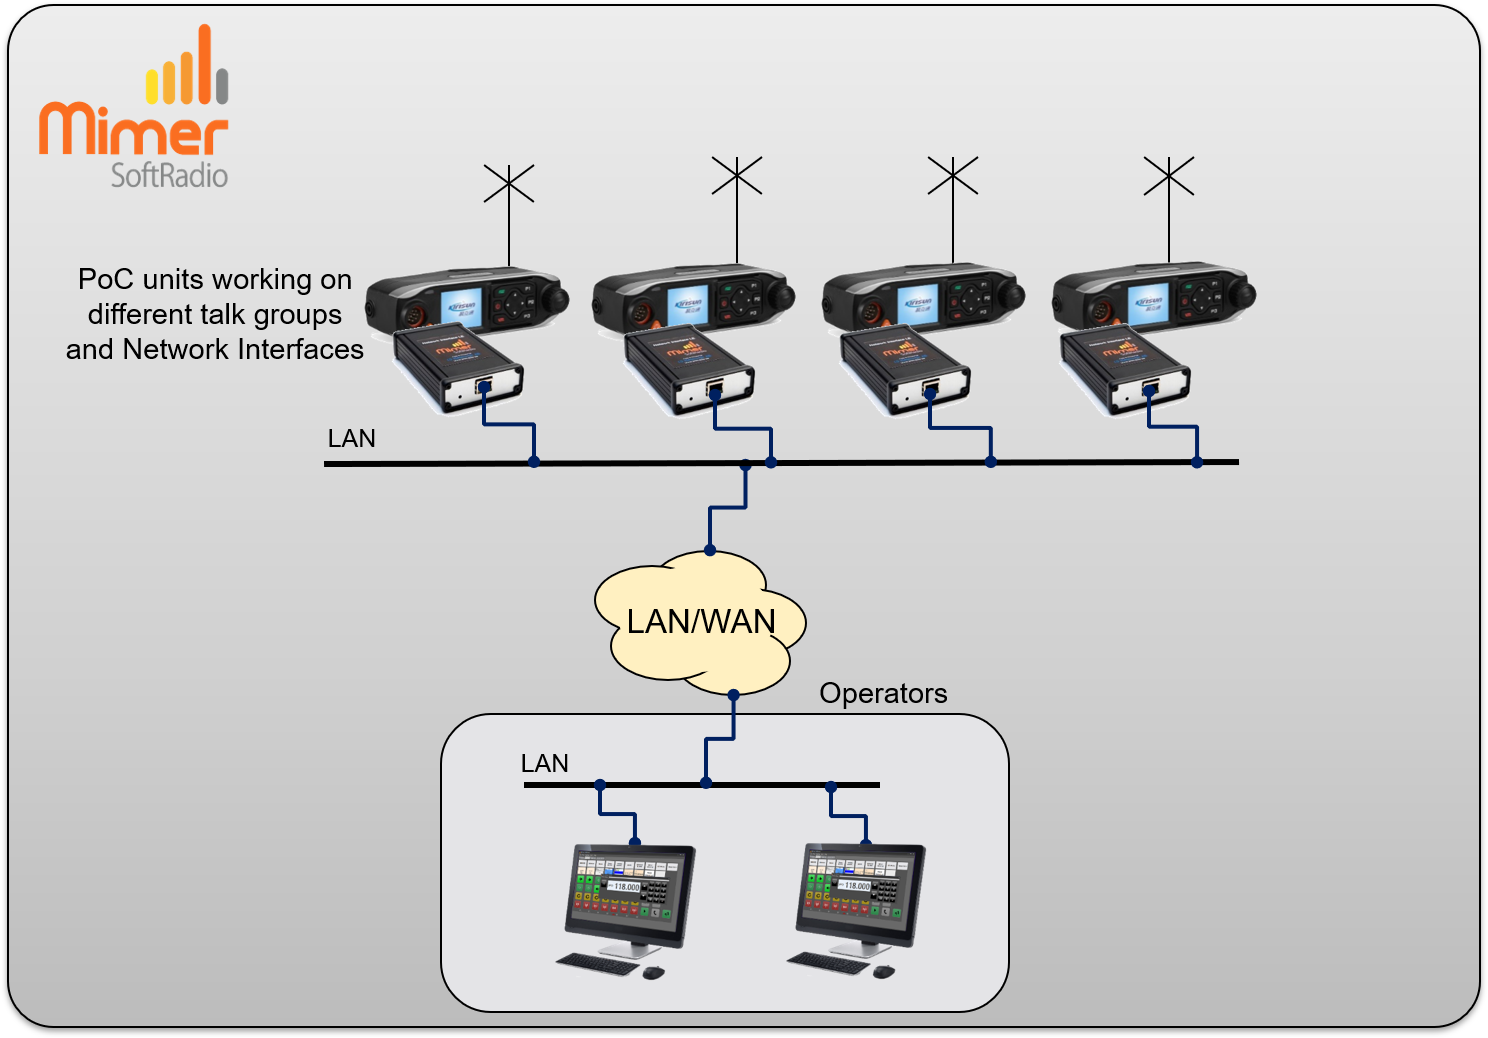 Two operators working with four PoC units on different talk groups